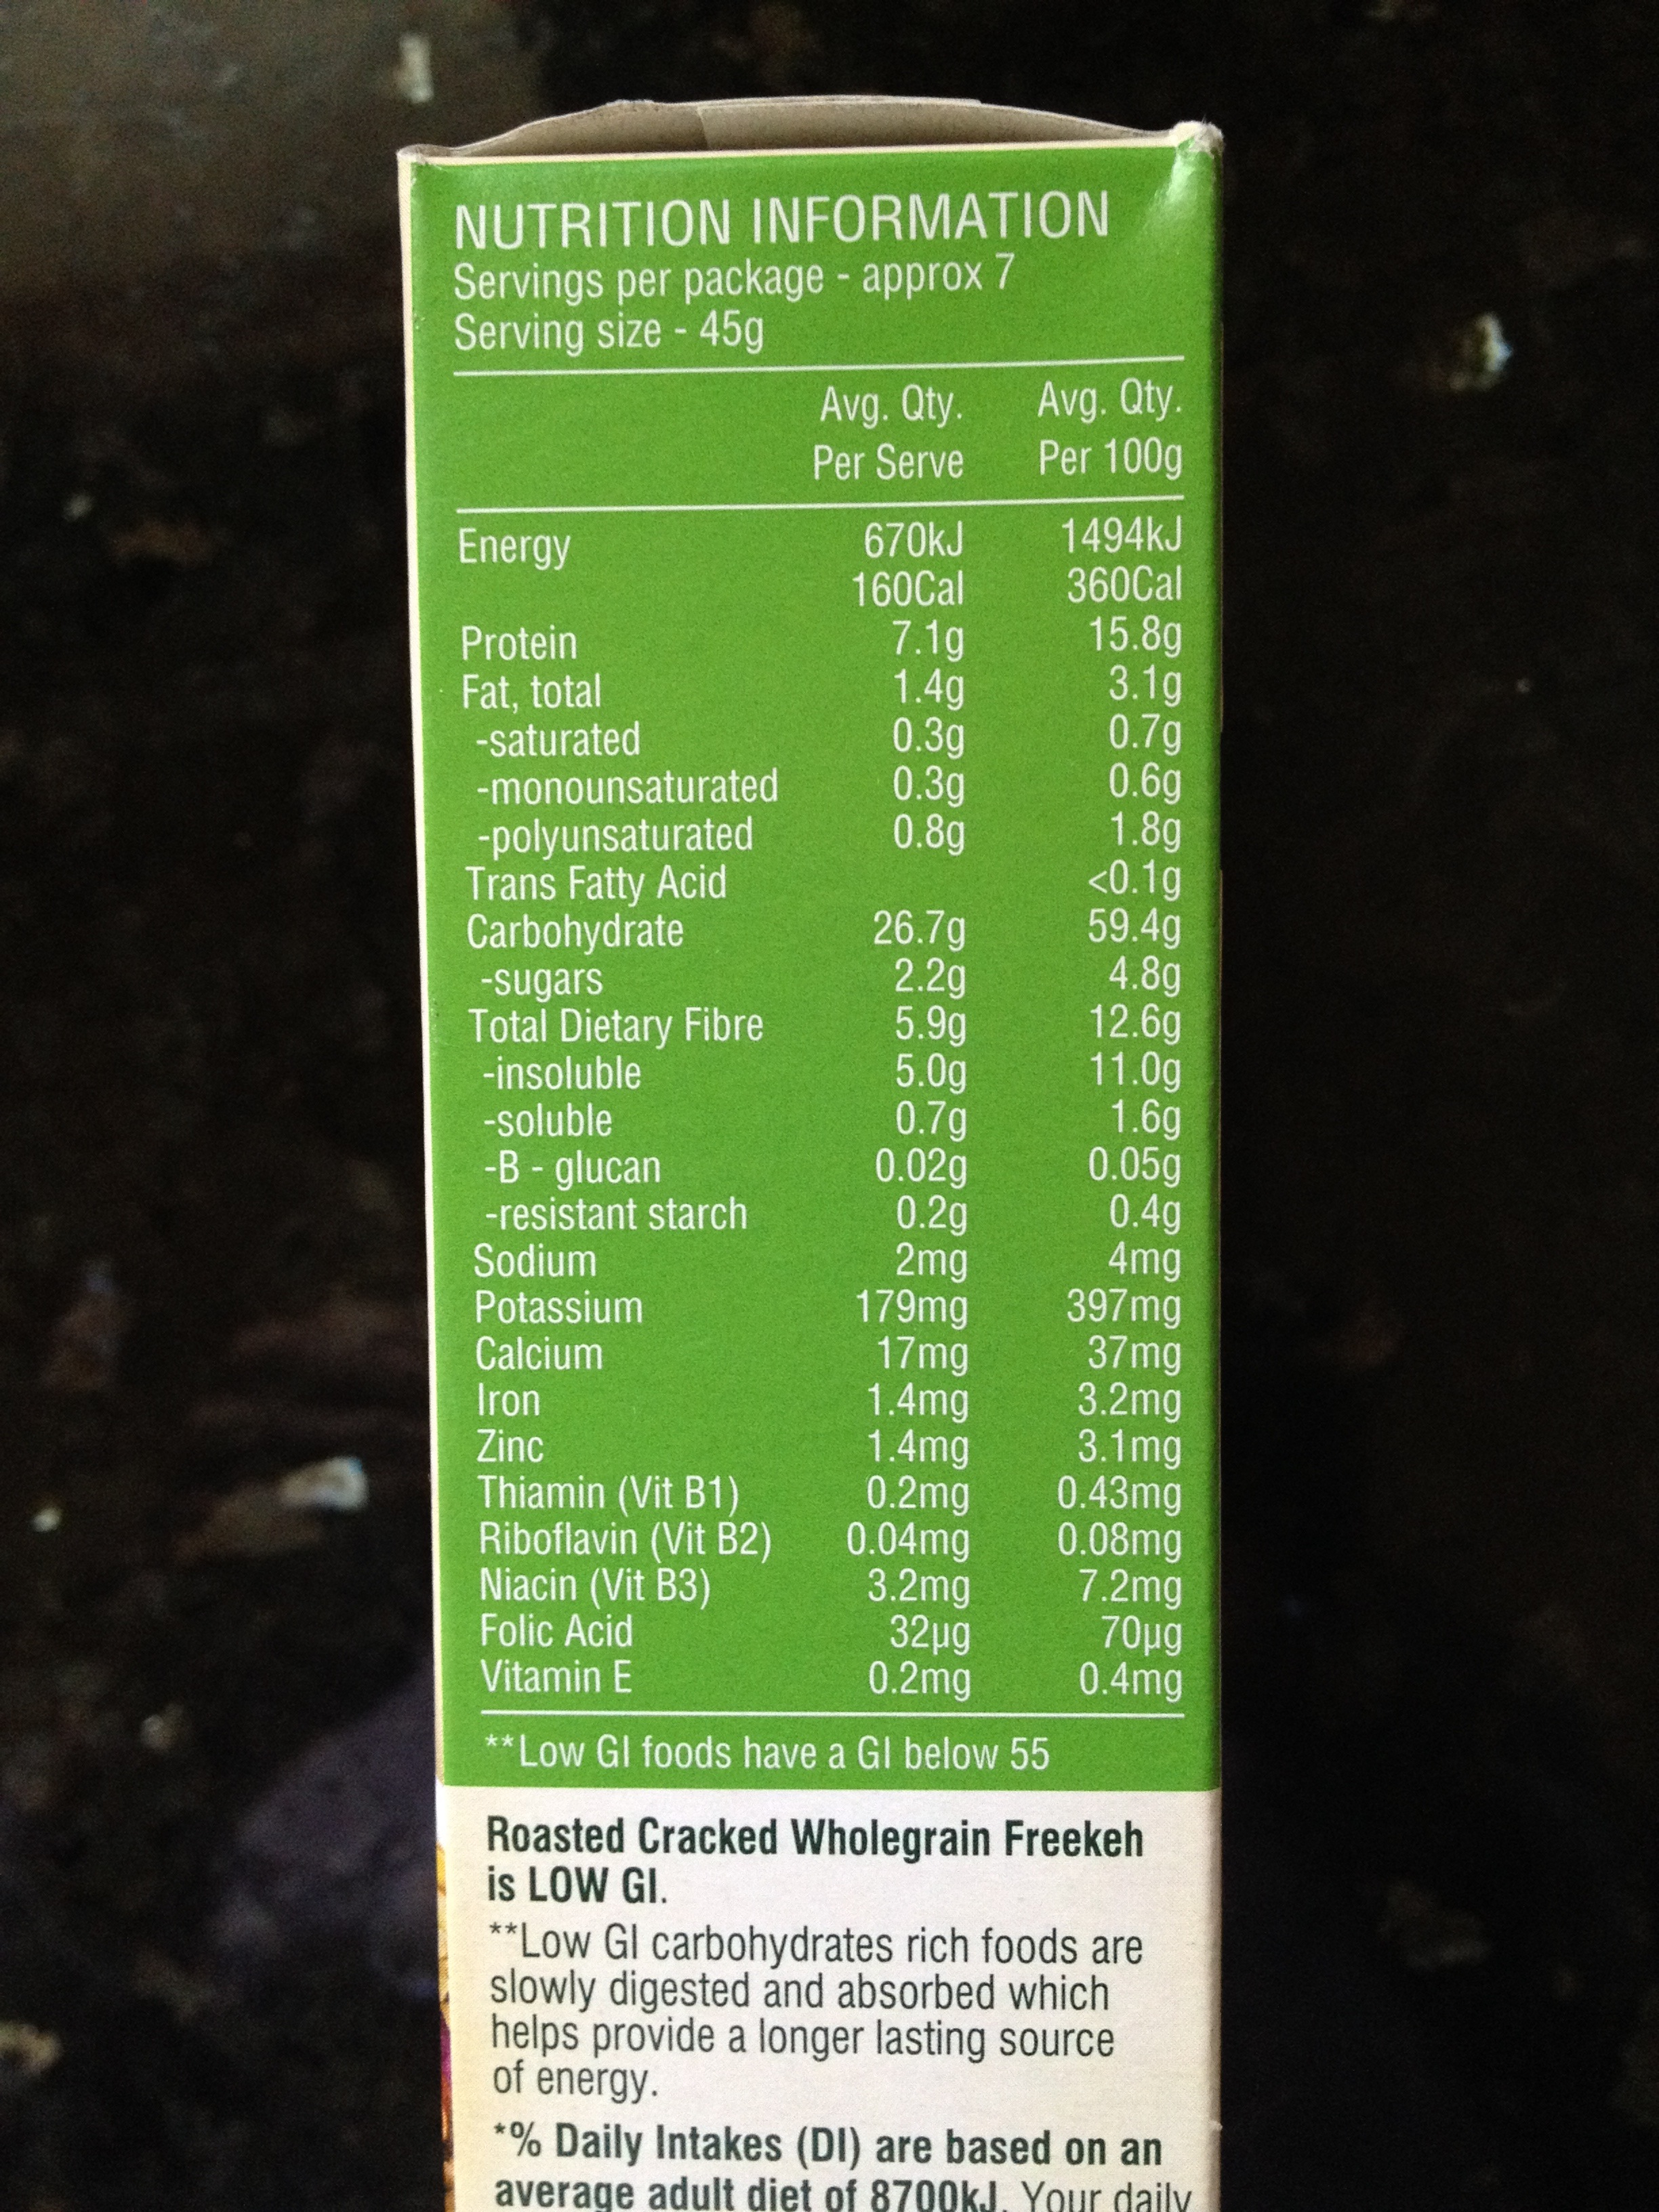 Another brands freekeh nutrition information